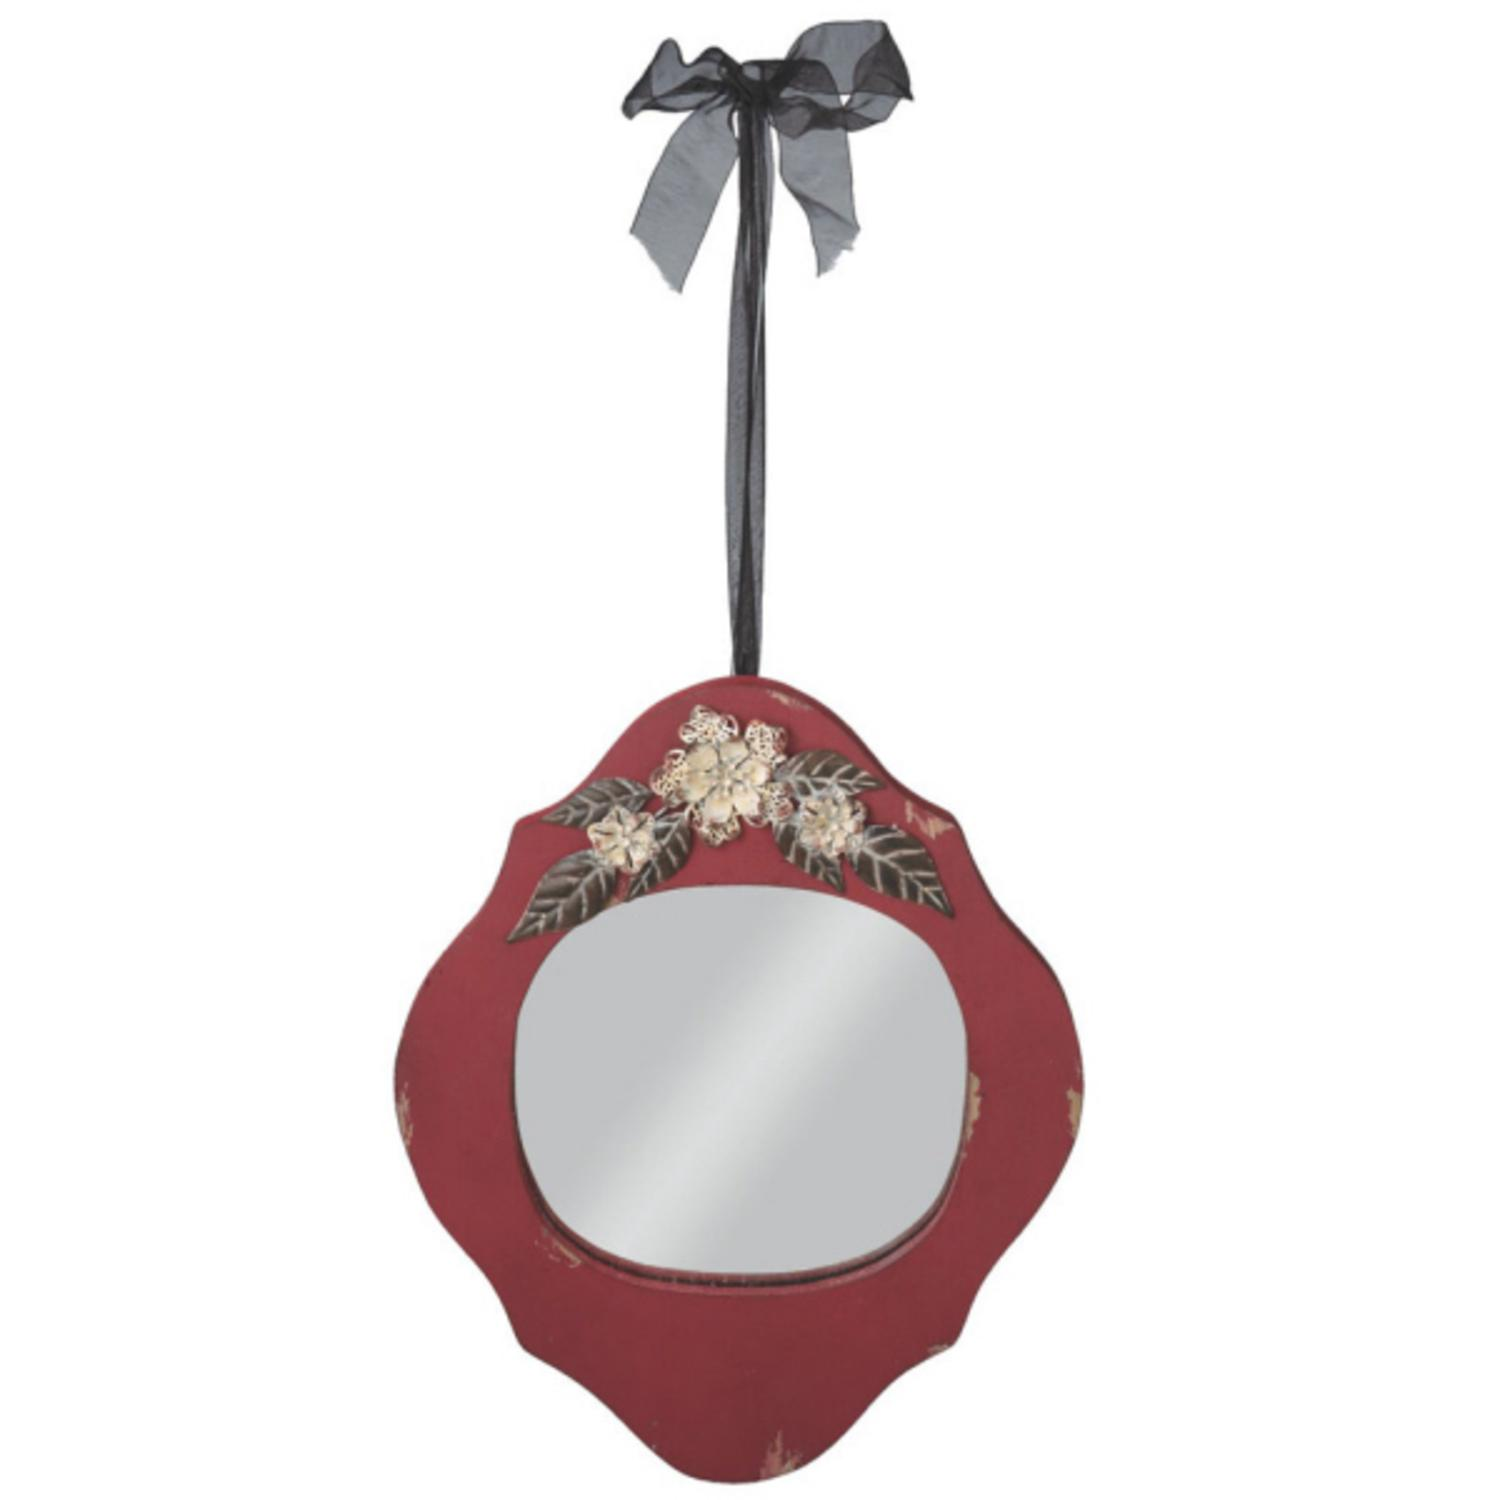 Pack of 2 Distressed Red Wall Mirrors with Flower Accent 14.5""